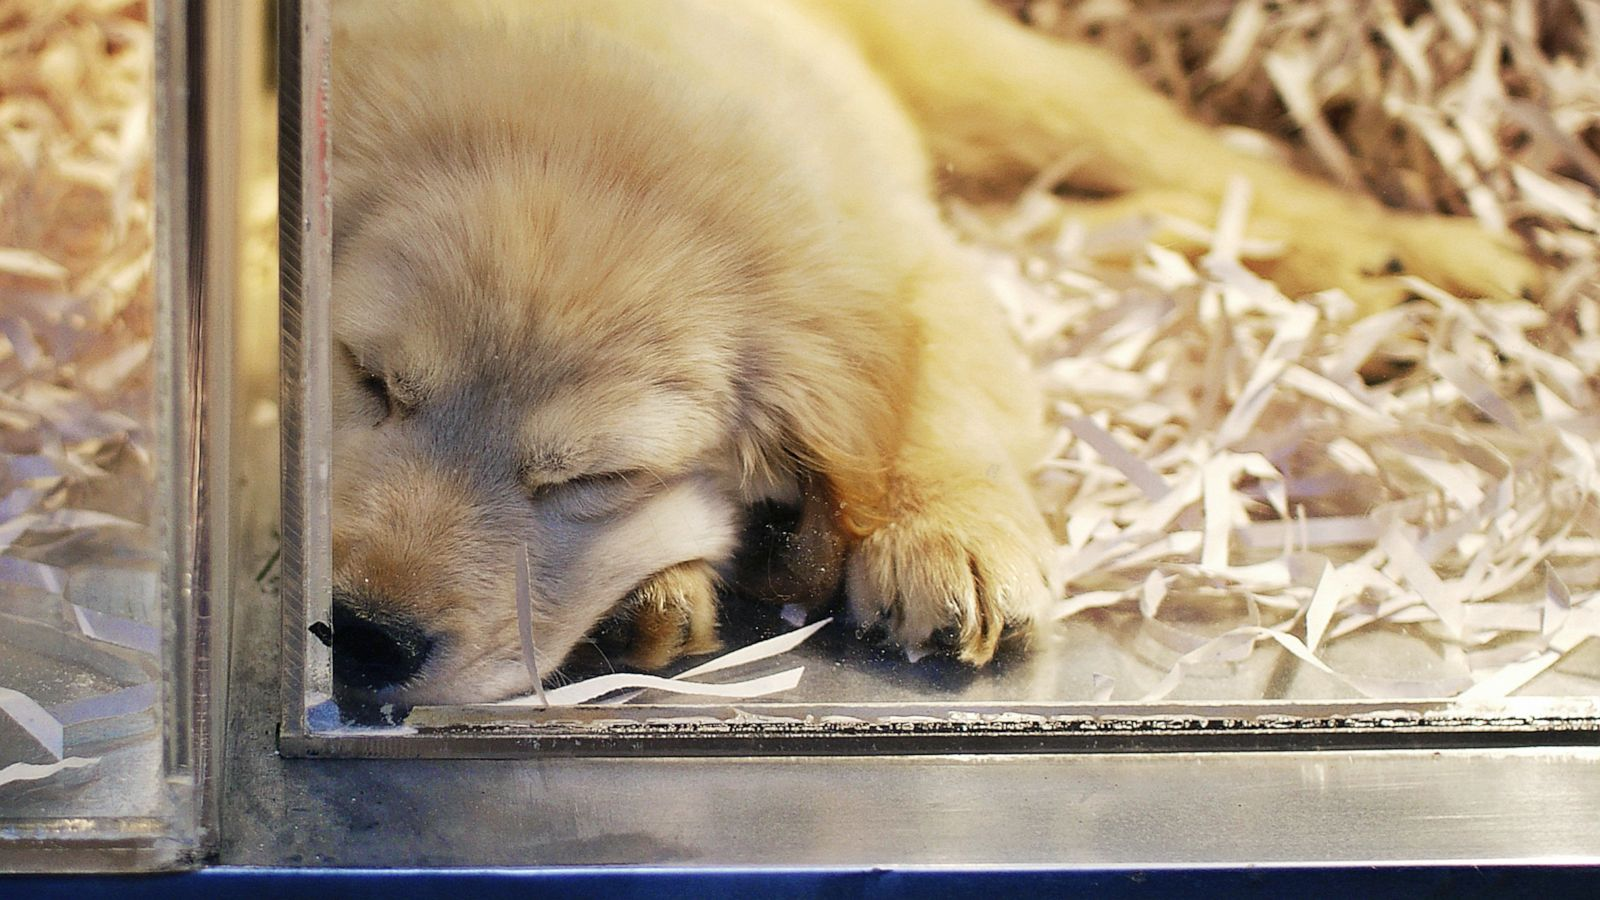 Outbreak Of Drug Resistant Infection Linked To Pet Store Puppies Cdc Says Abc News